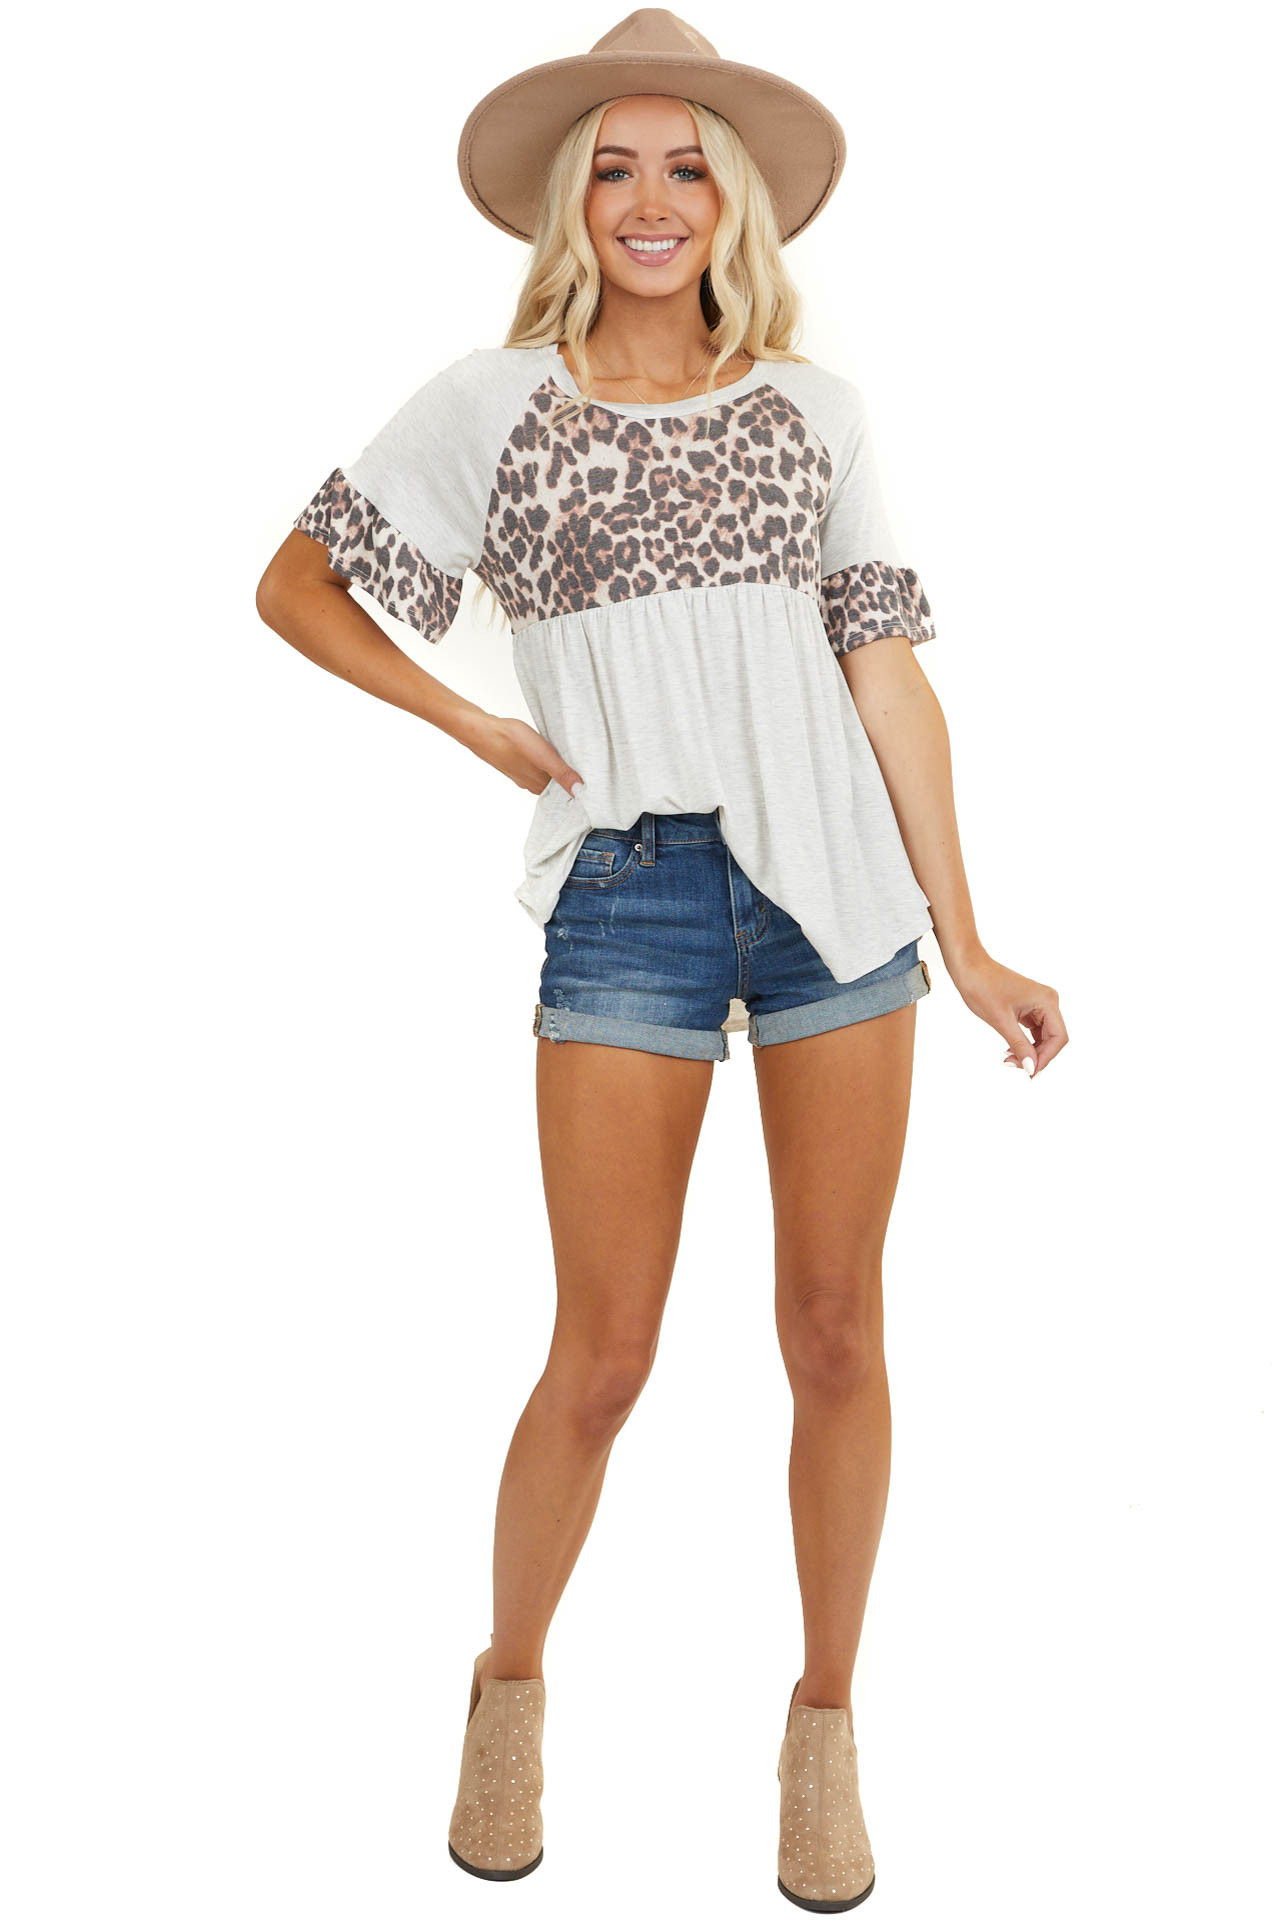 Ivory Babydoll Short Sleeve Top with Leopard Print Contrast